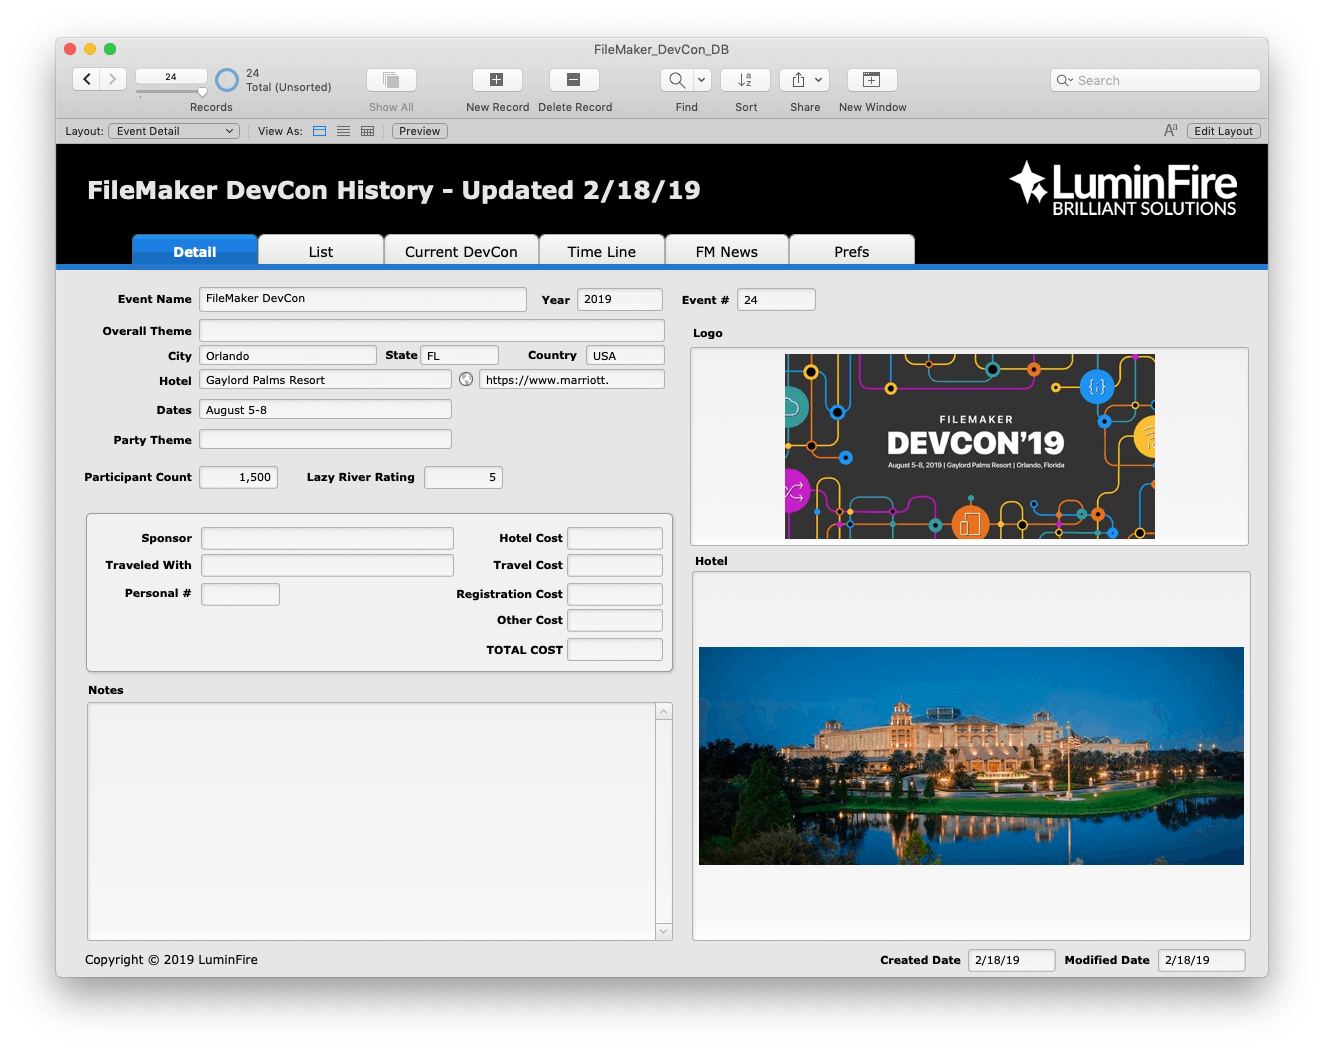 FileMaker DevCon 2019 - Developer Conference in Orlando - LuminFire